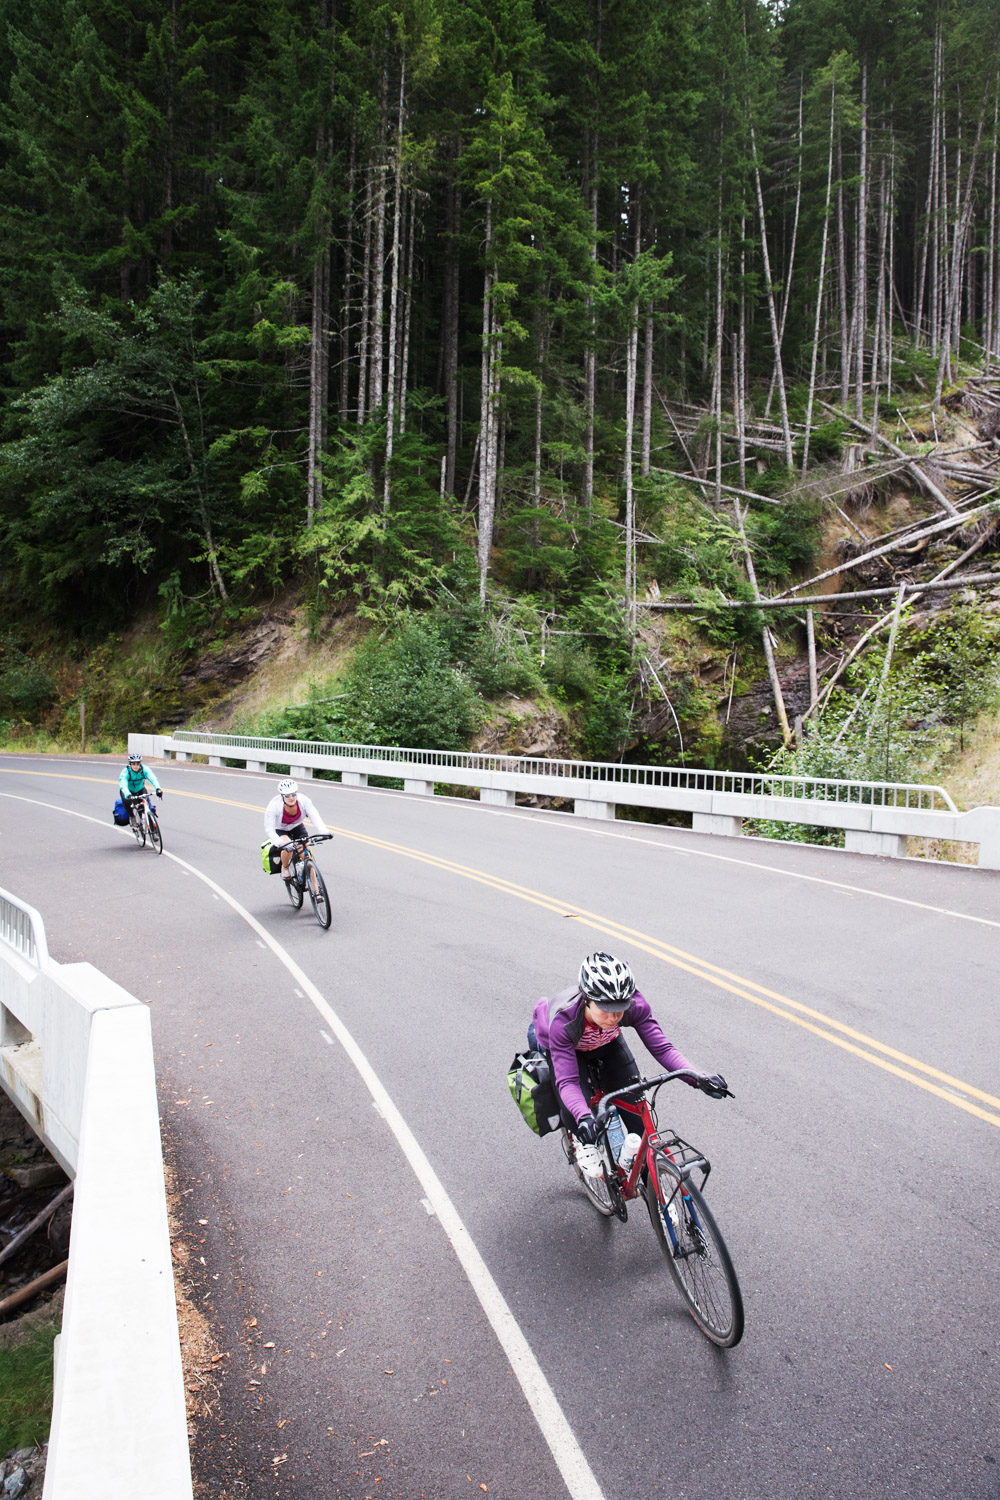 Three road cyclists. Mount St. Helens, WA